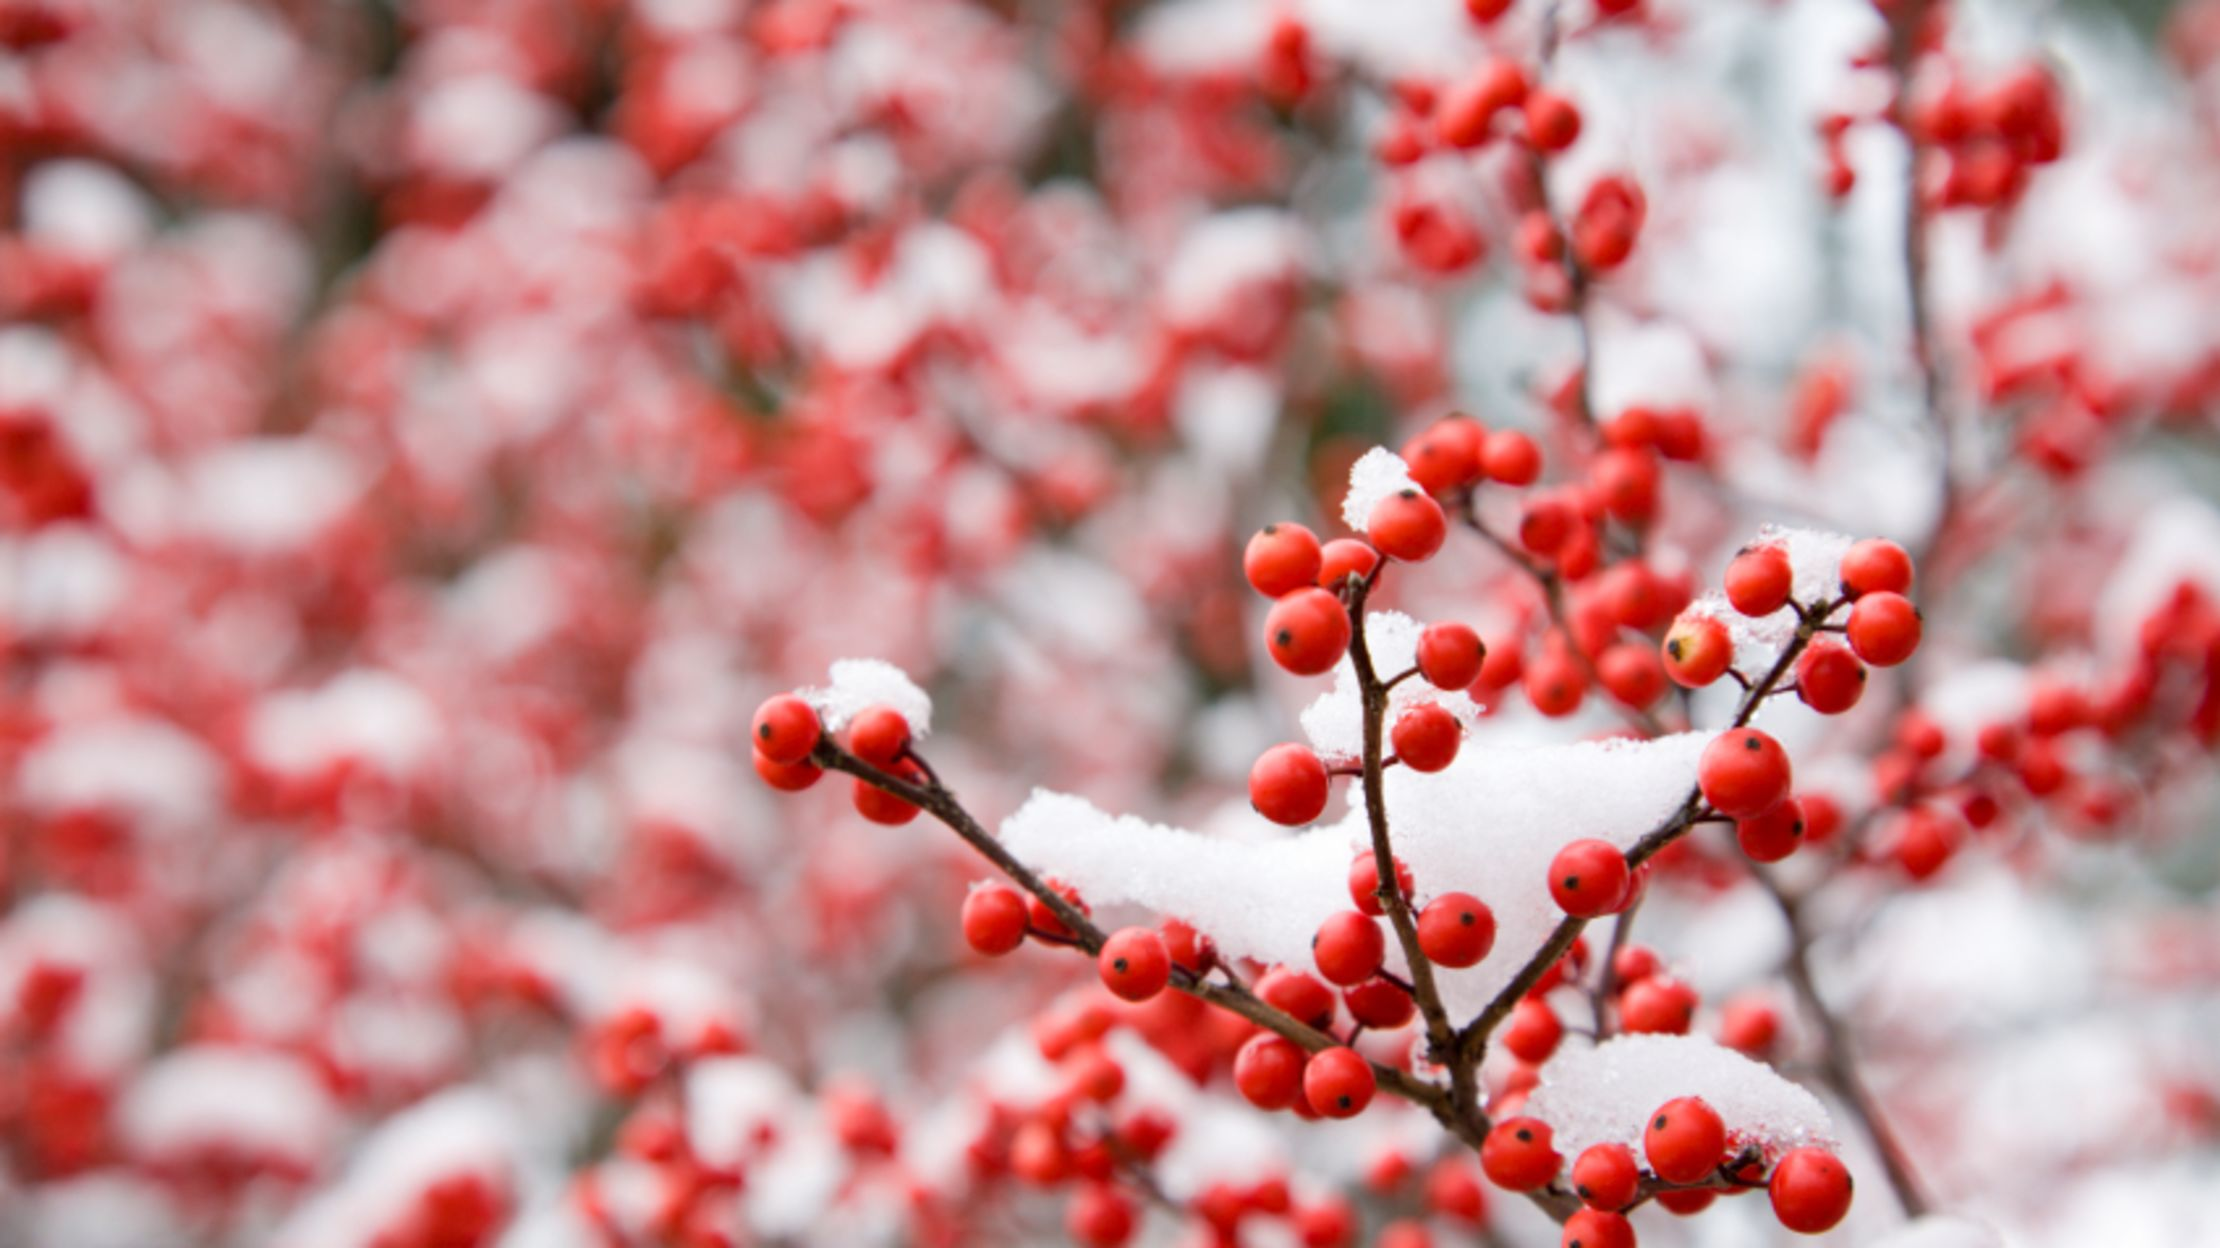 15 Incredibly Cool Facts About Snow | Mental Floss